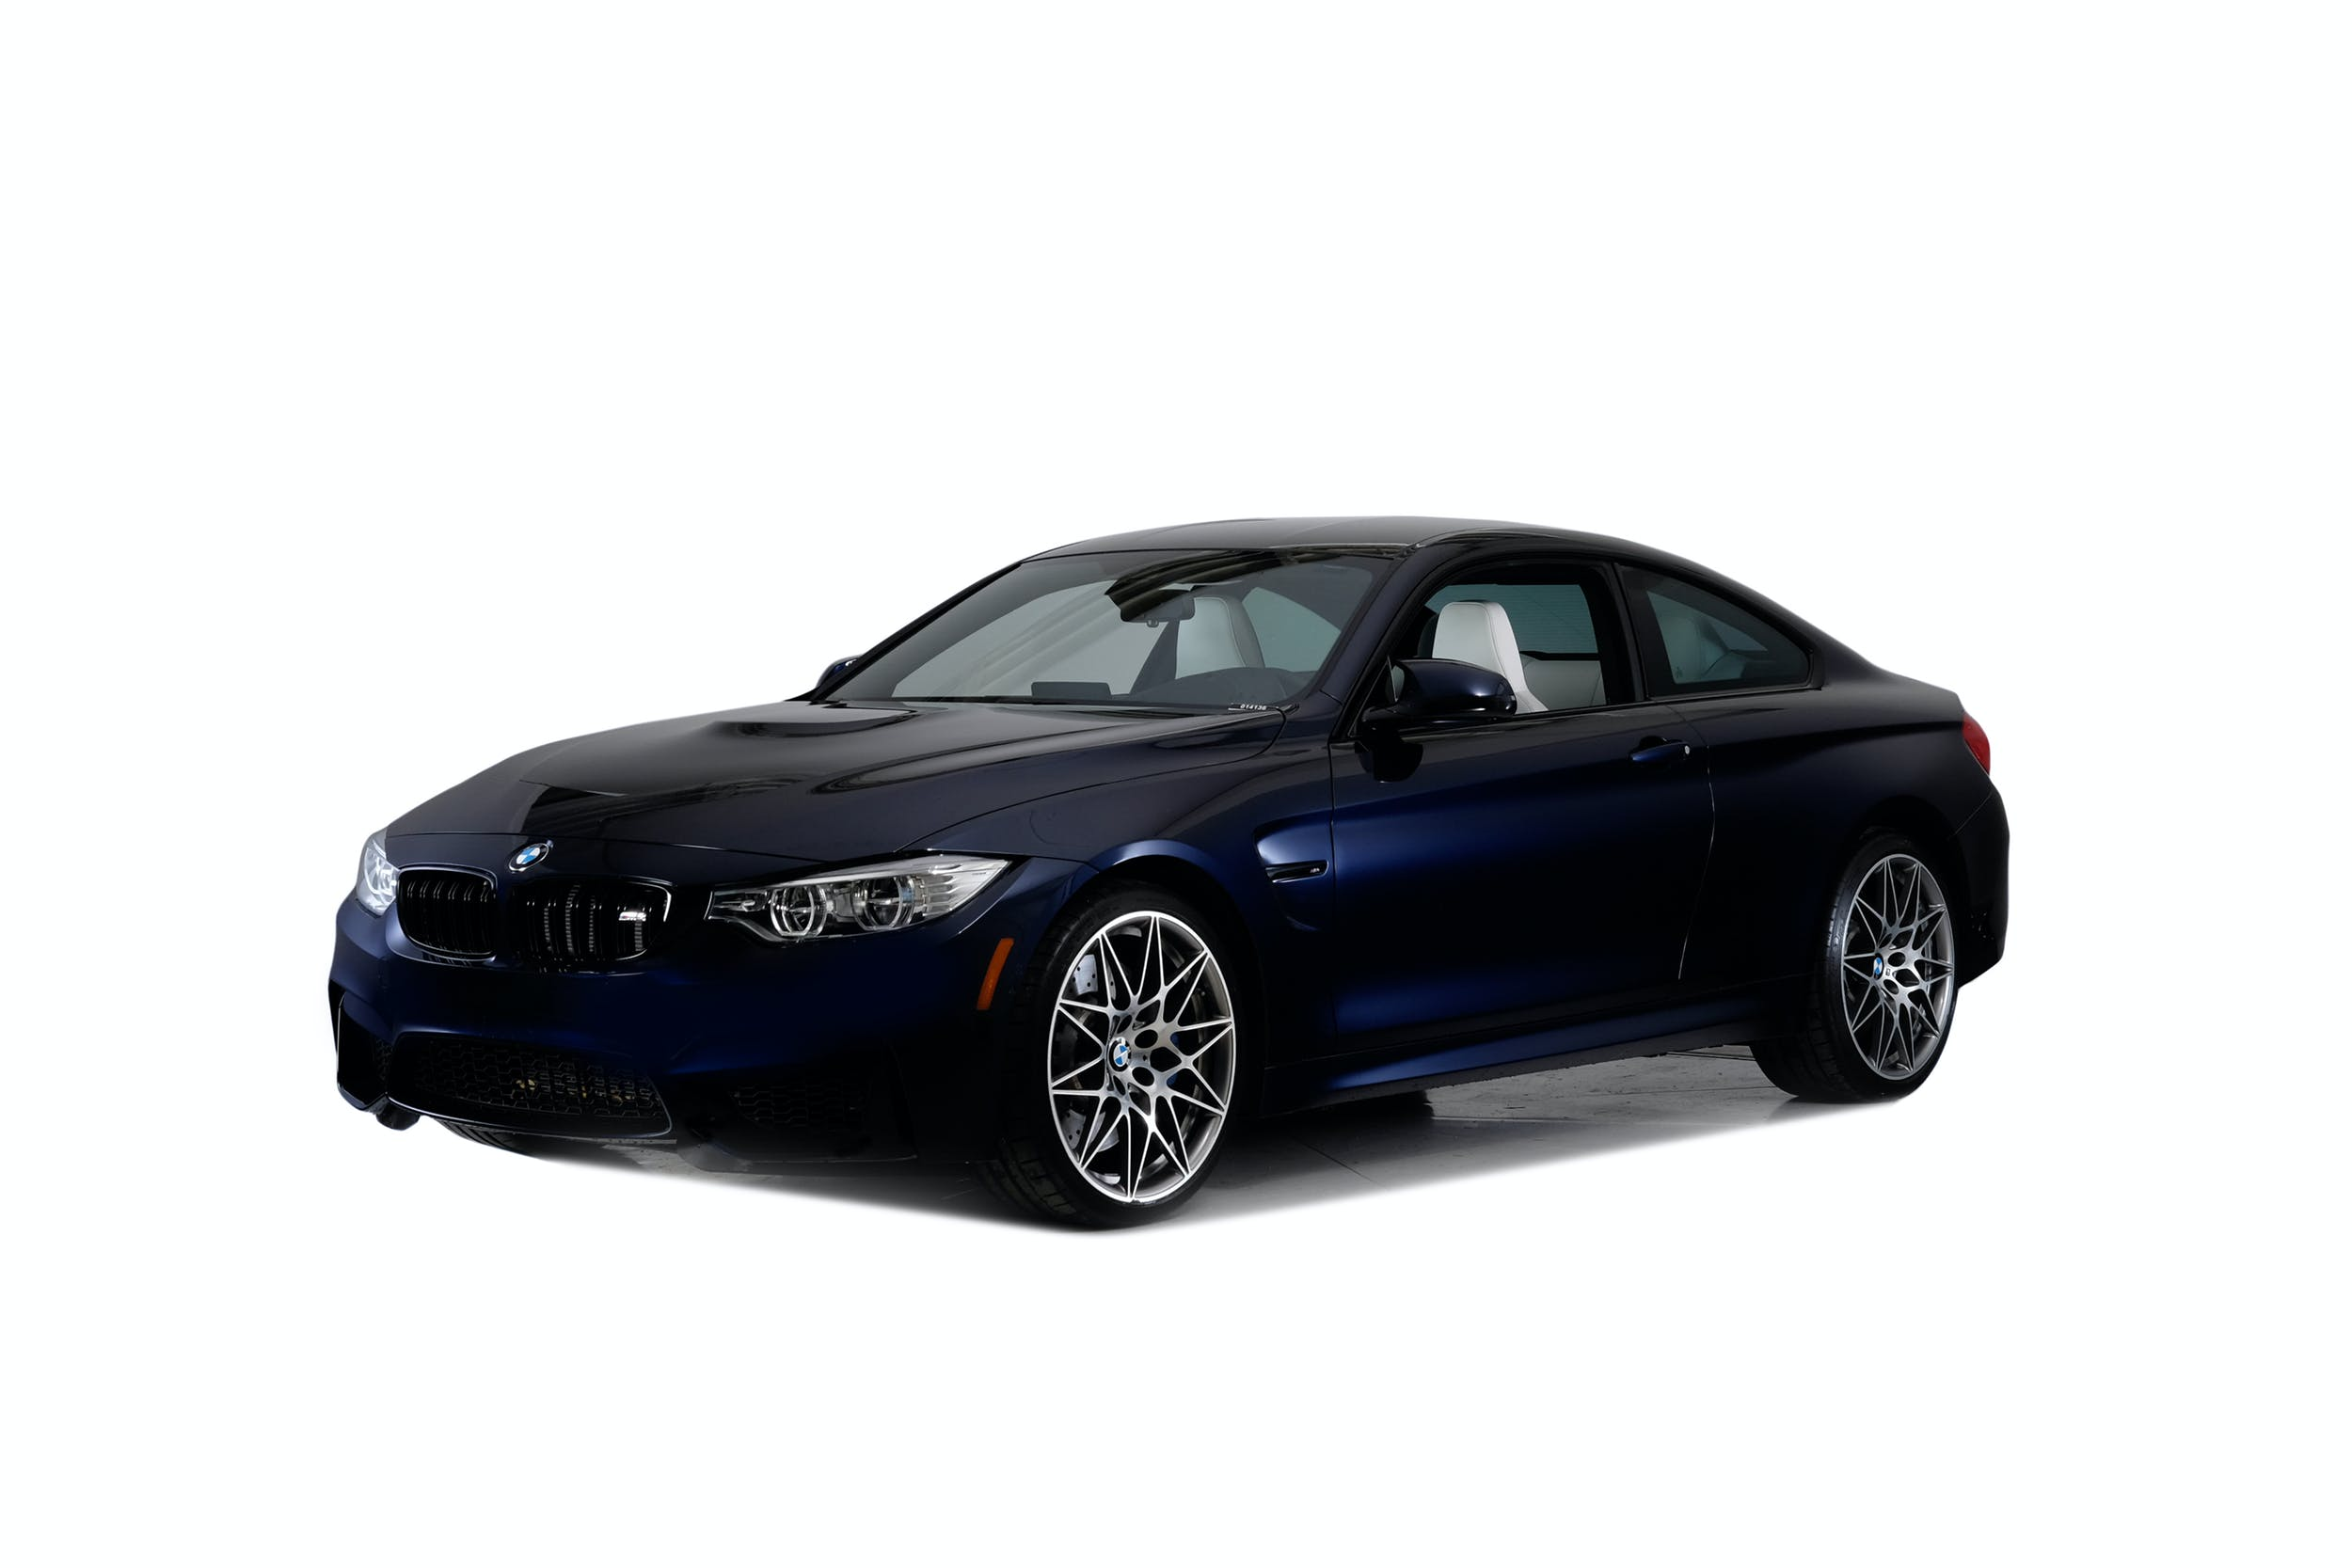 Used cars for sale in San Francisco | Shift